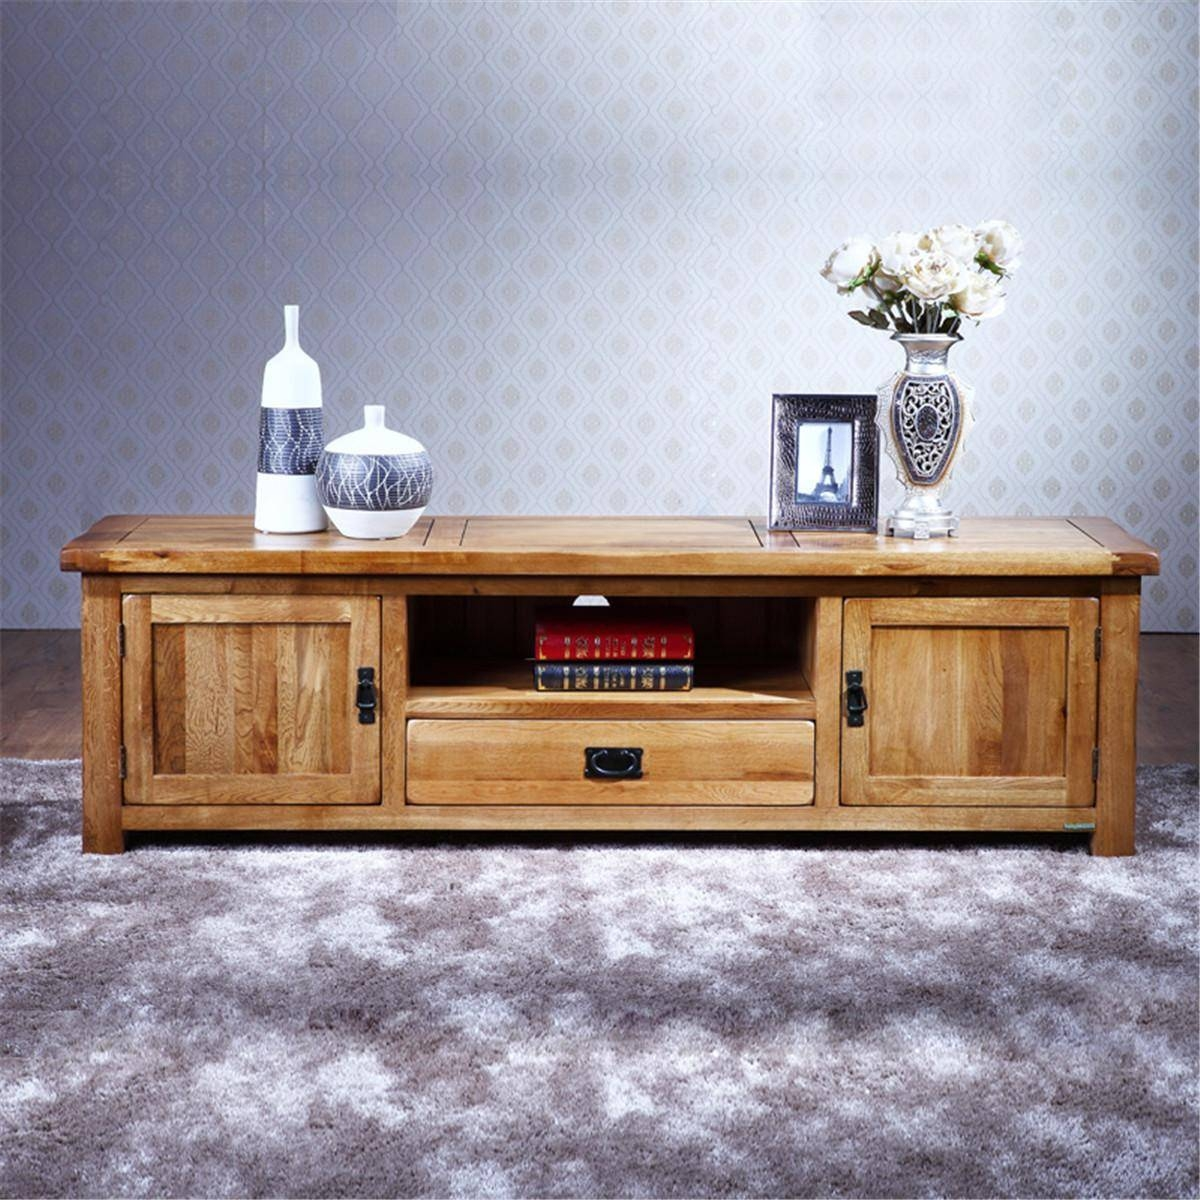 2017 100% Pure Solid Wood Tv Stand Oak Tv Stand Media Console Intended For Tv Stands In Oak (View 5 of 15)